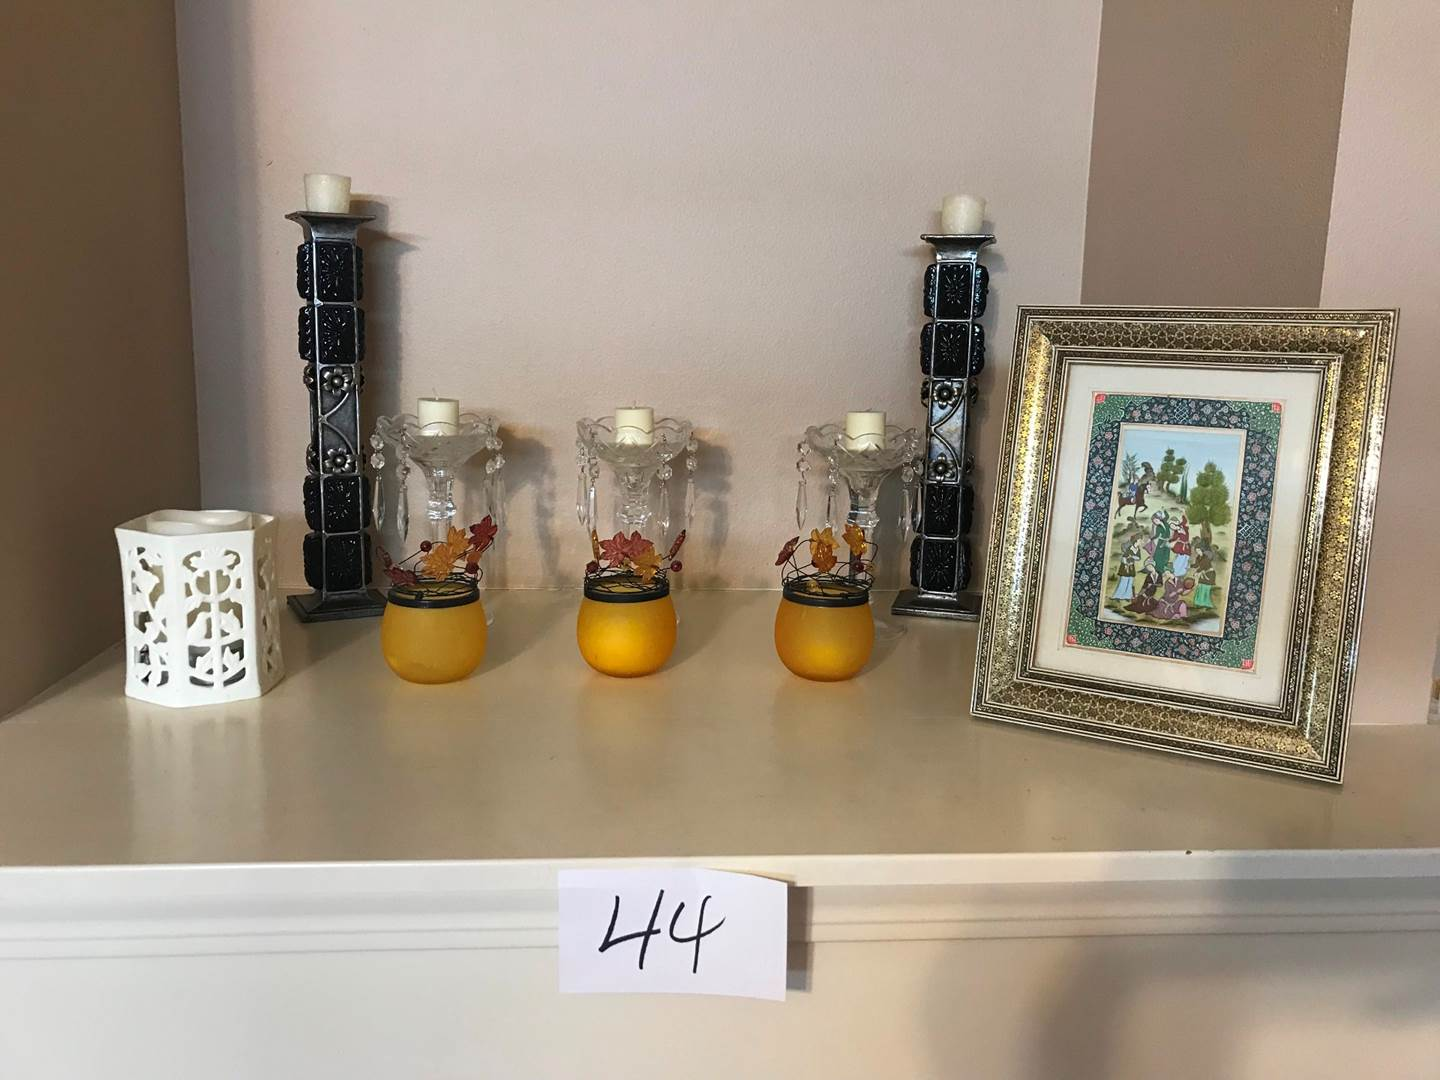 Lot # 44 - Assorted items: metal, crystal, glass candle holders, framed Asian picture (main image)